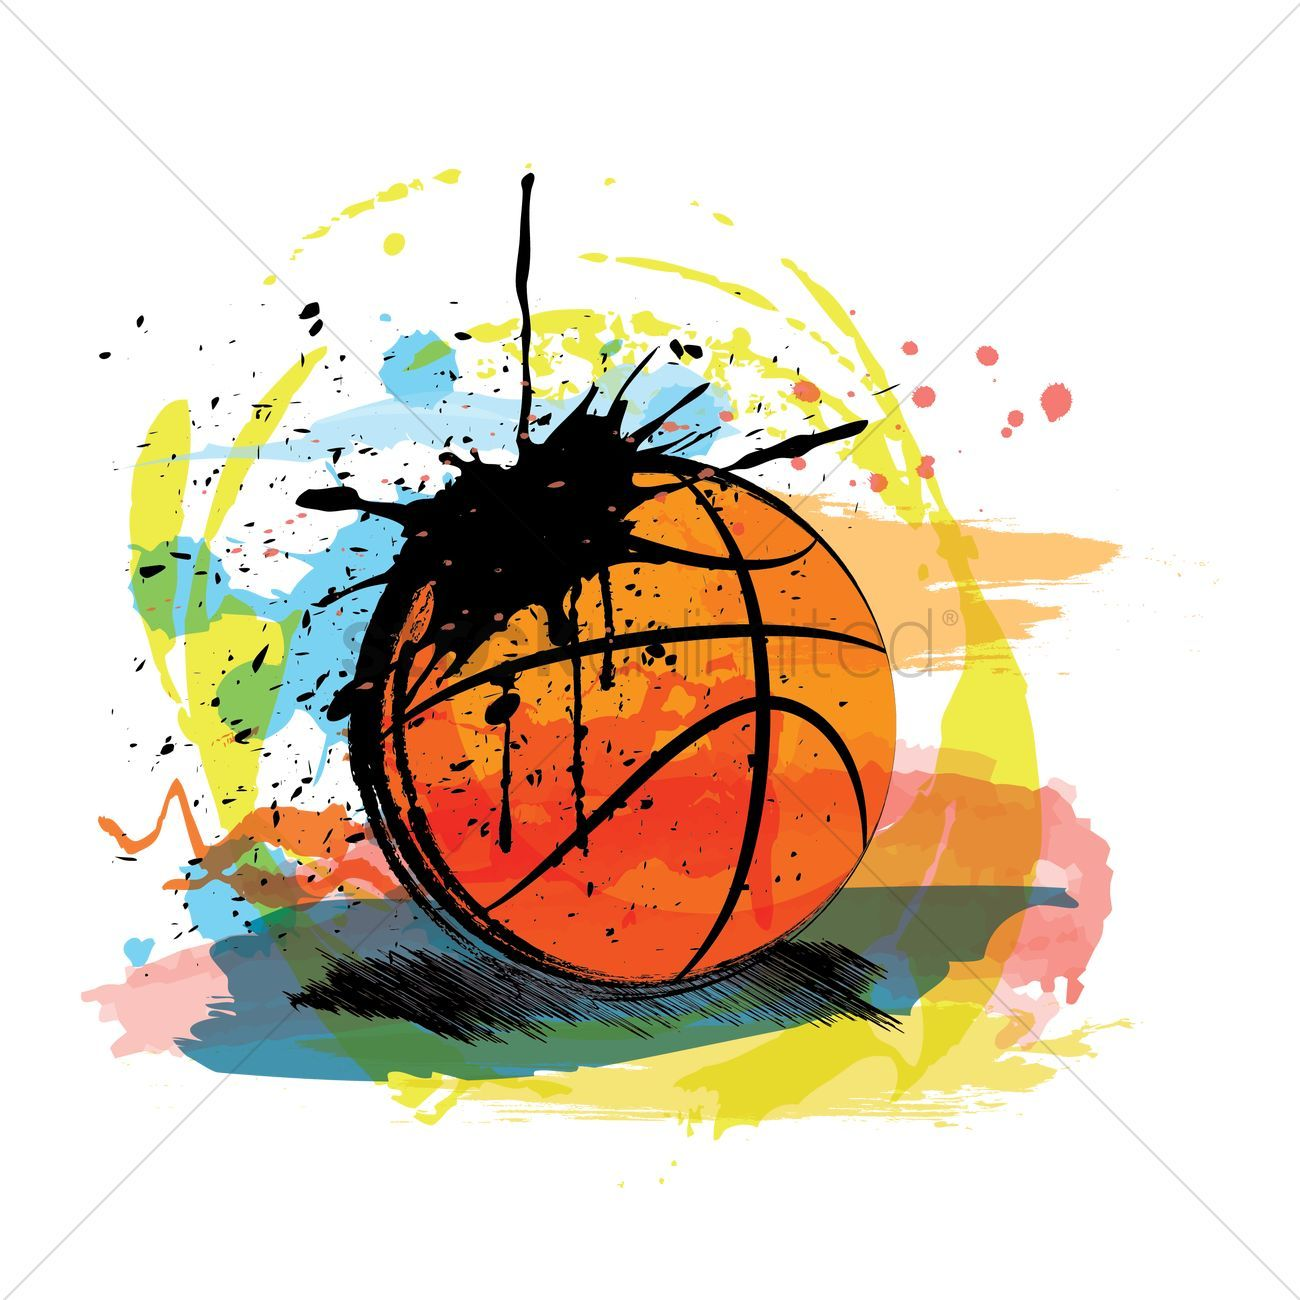 Abstract basketball clipart 3 » Clipart Portal.